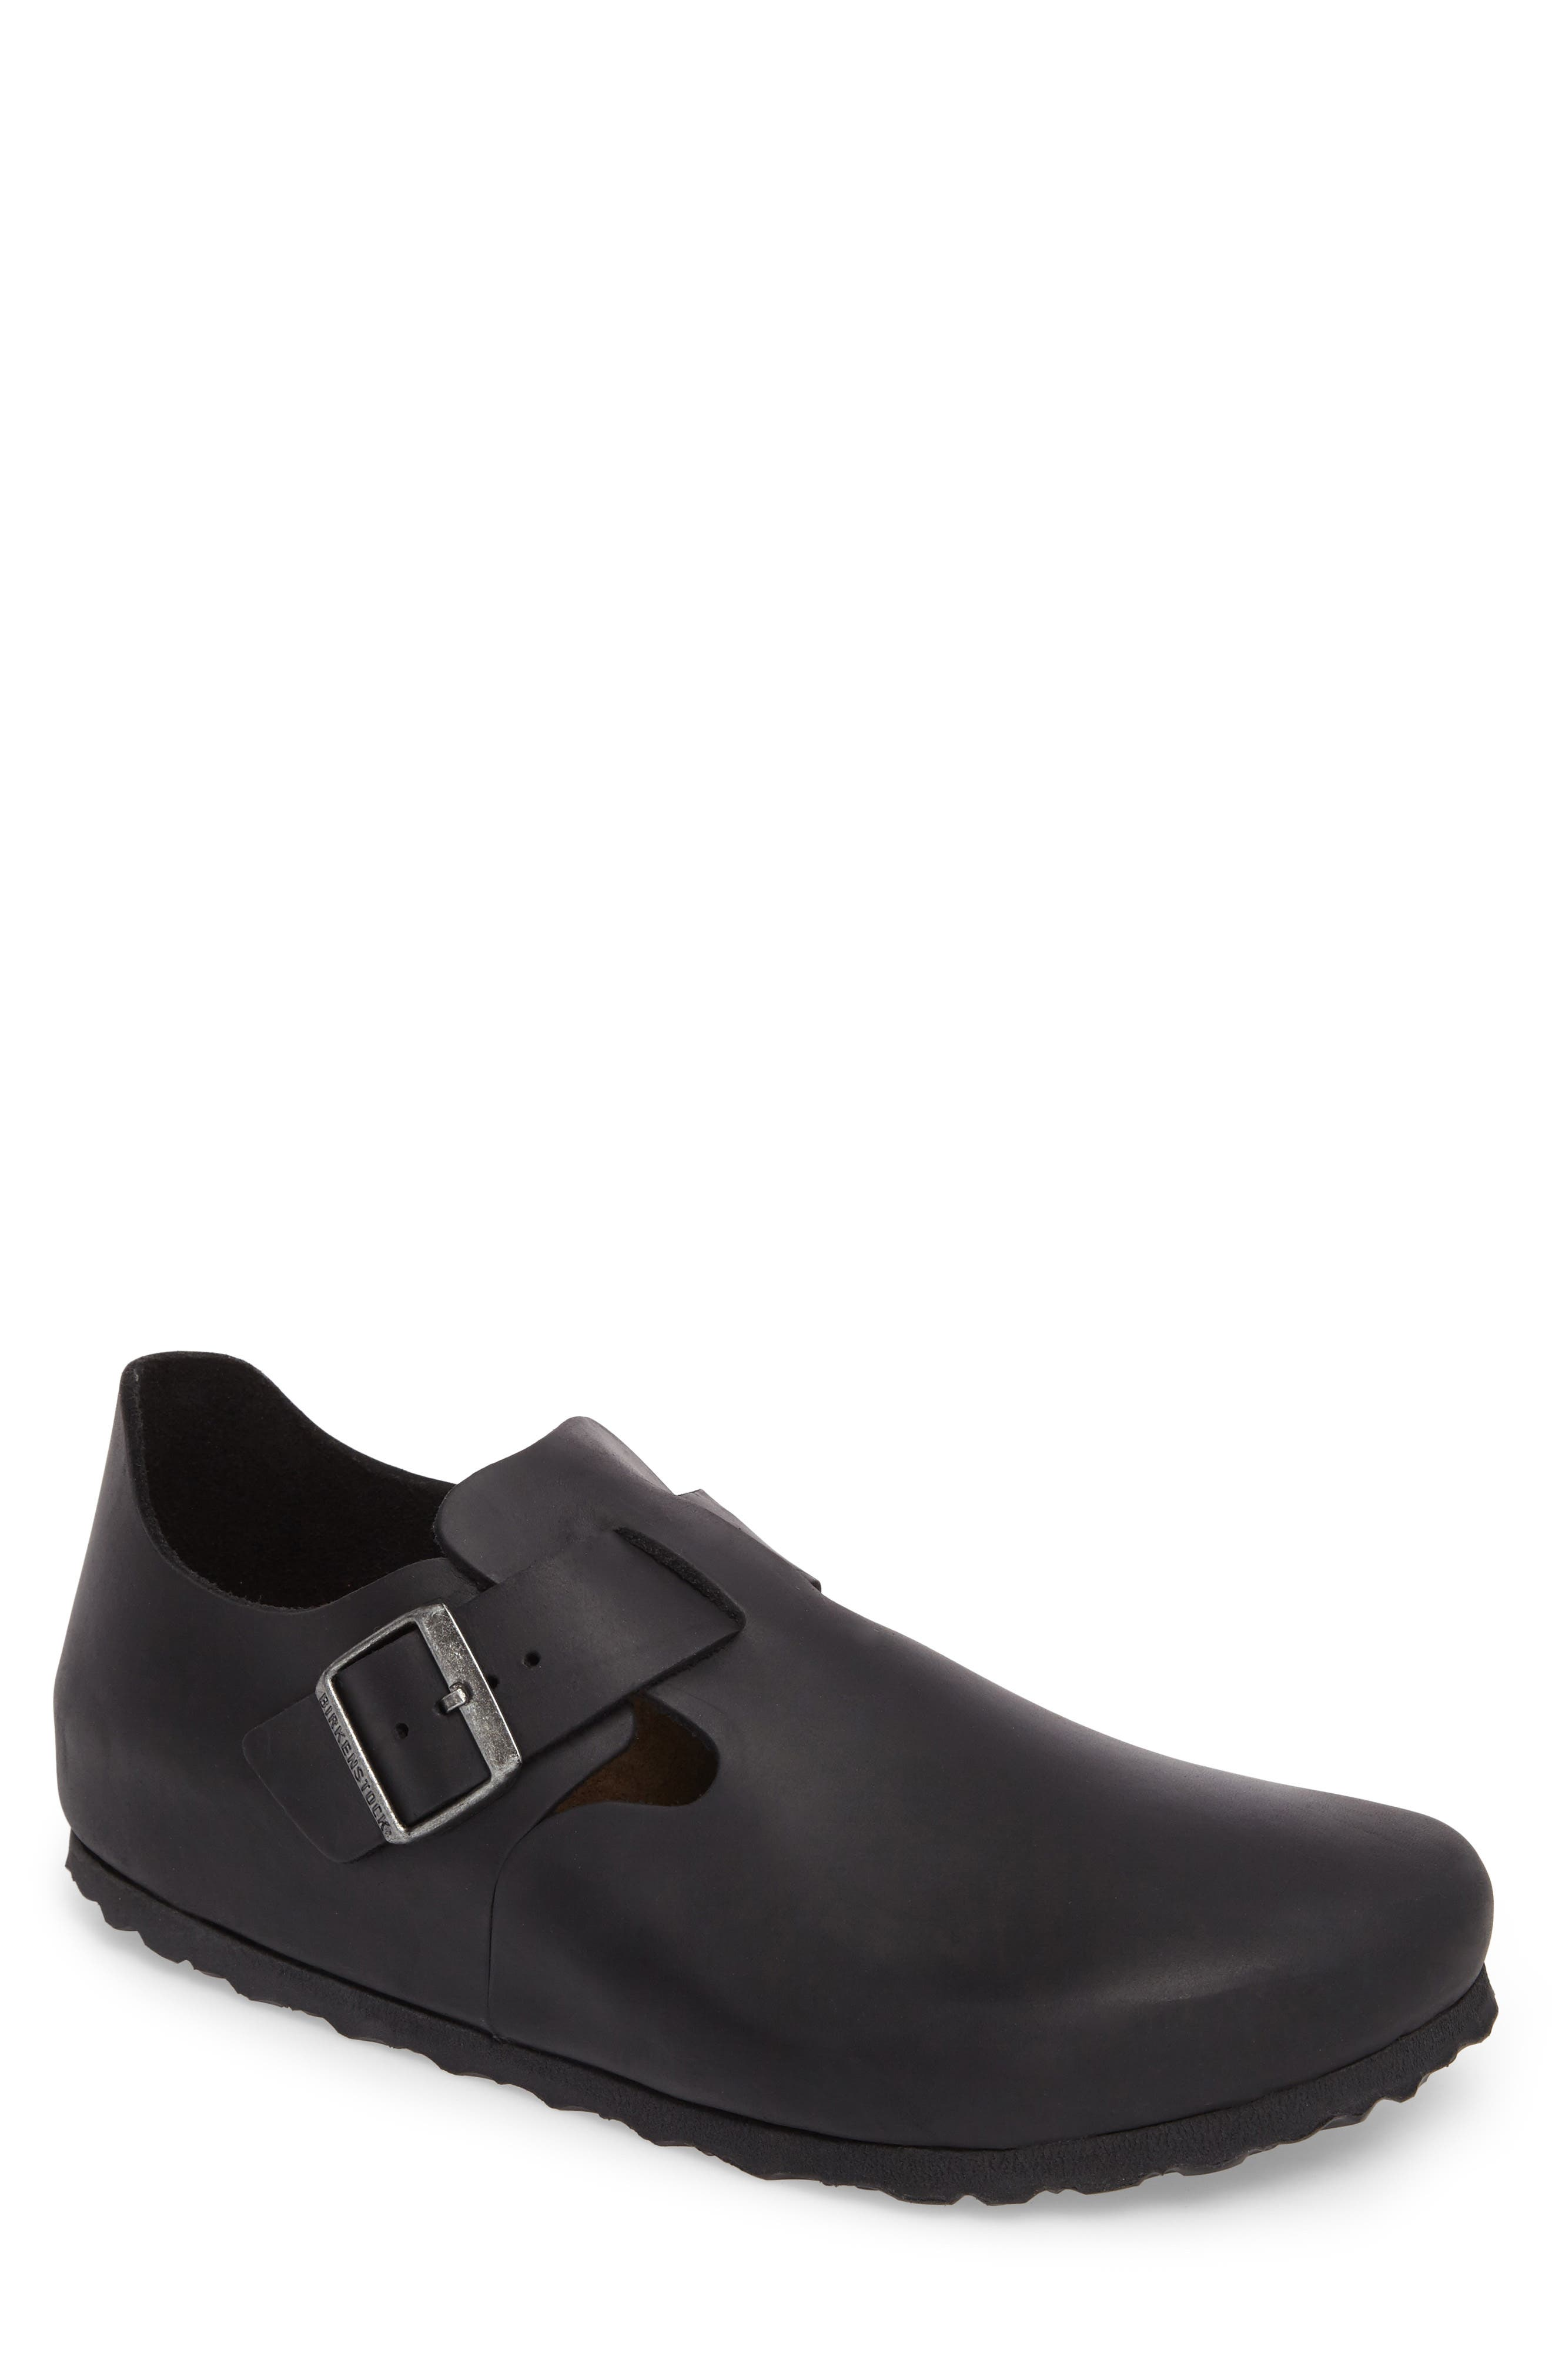 Birkenstock 'London' Slip-On   (Men)